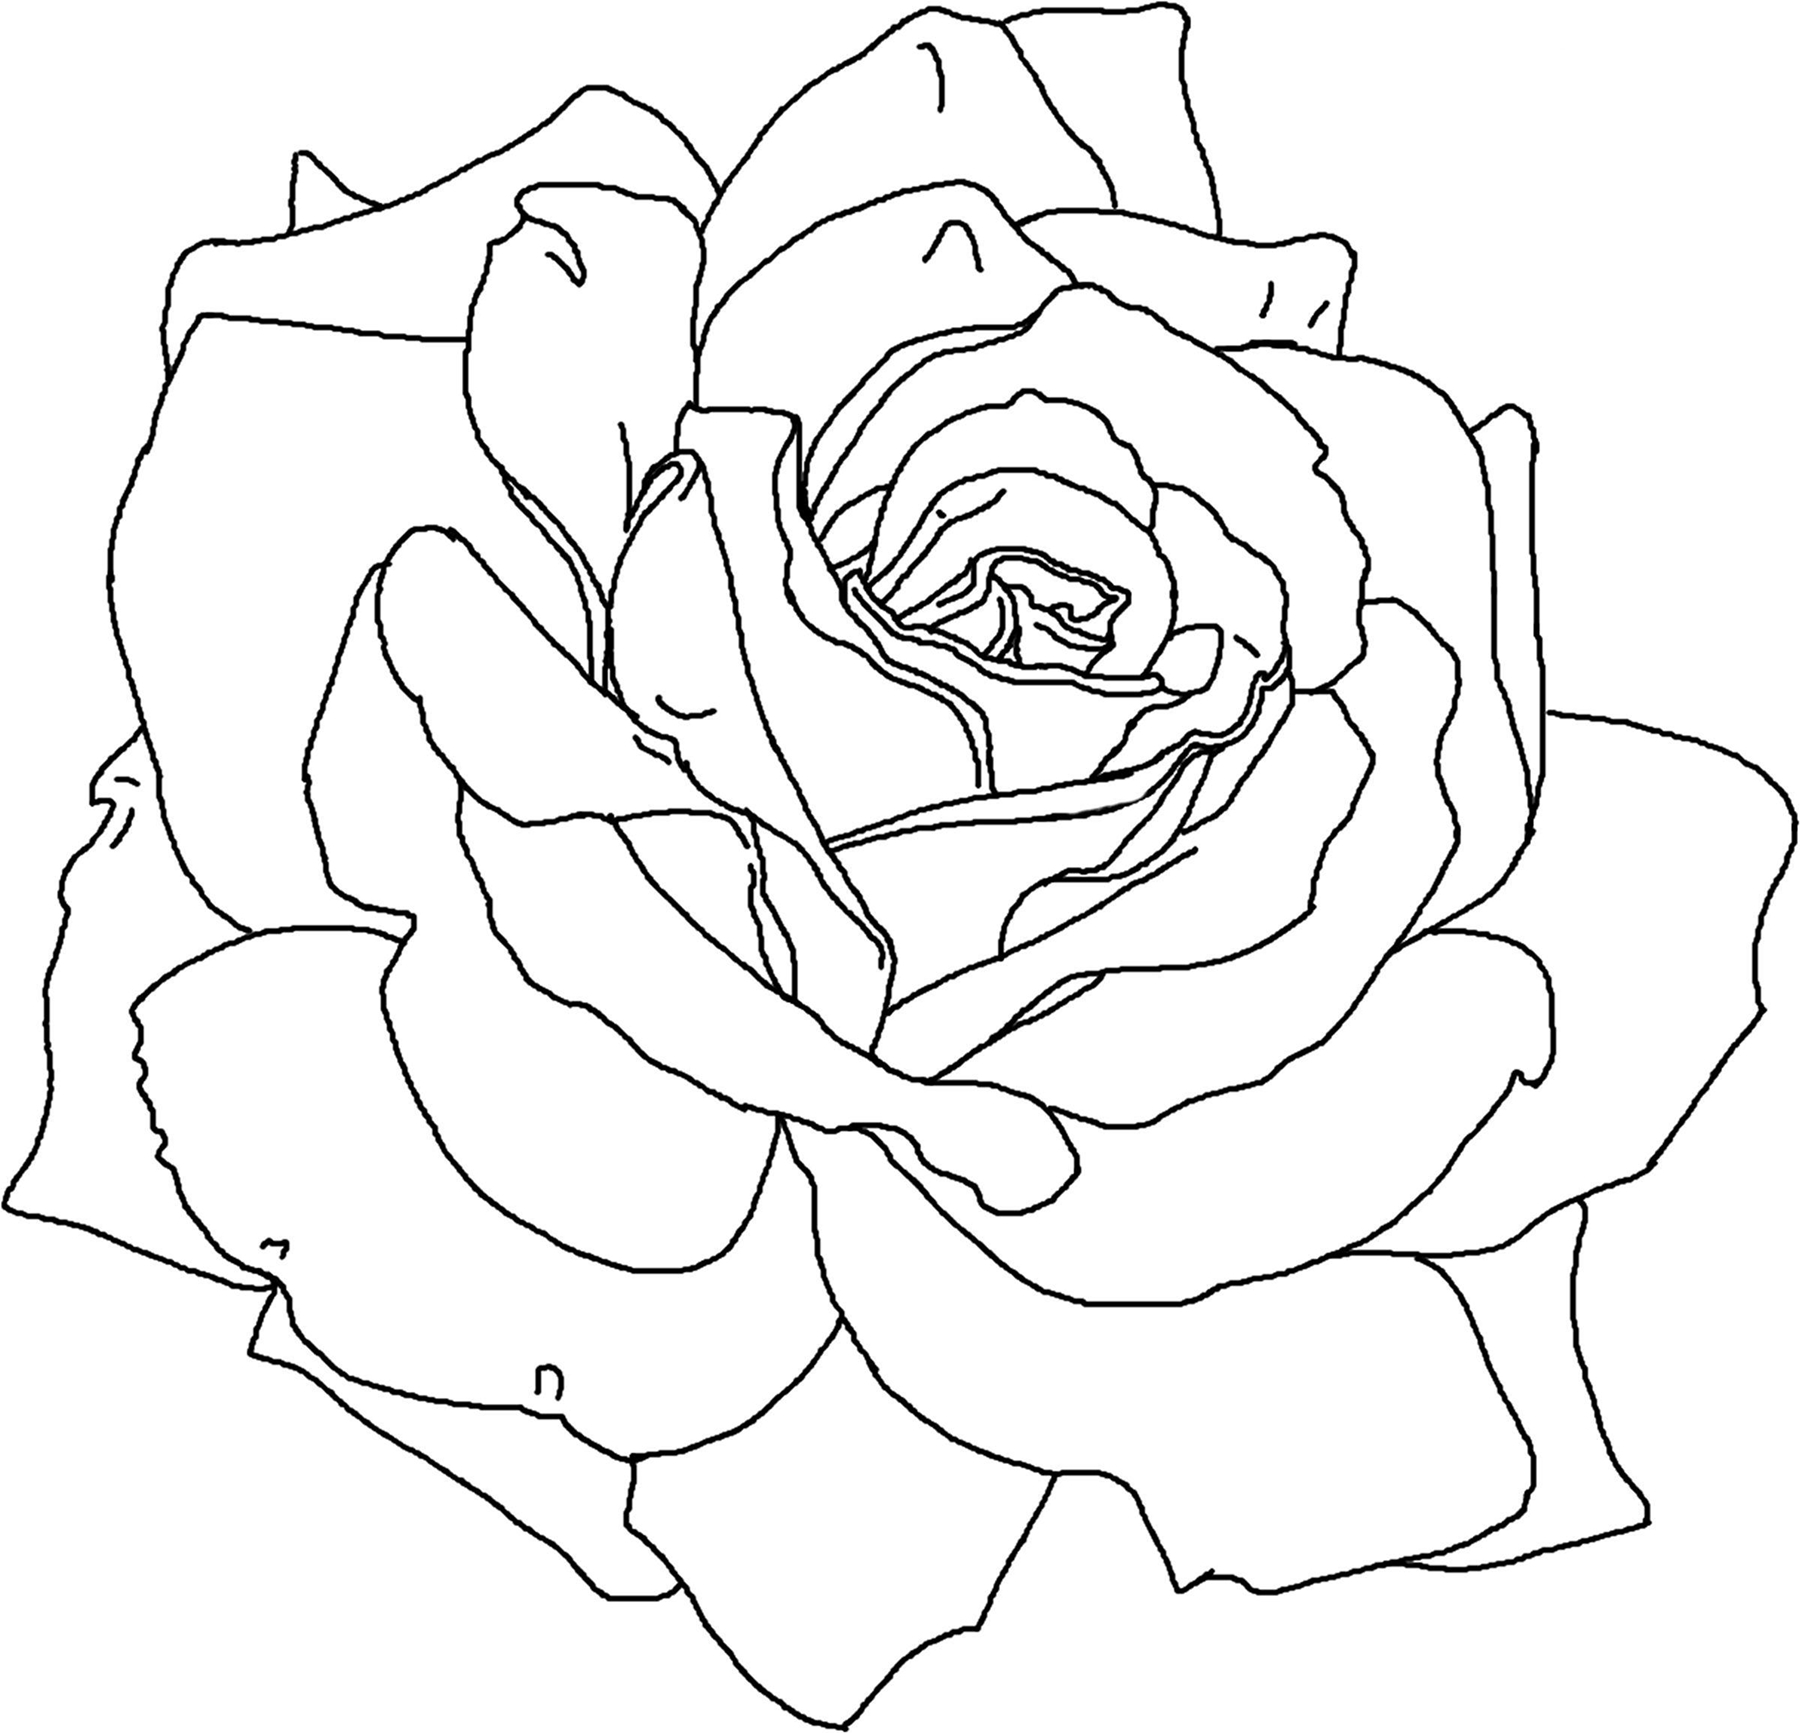 coloring pages of a flower - photo#15